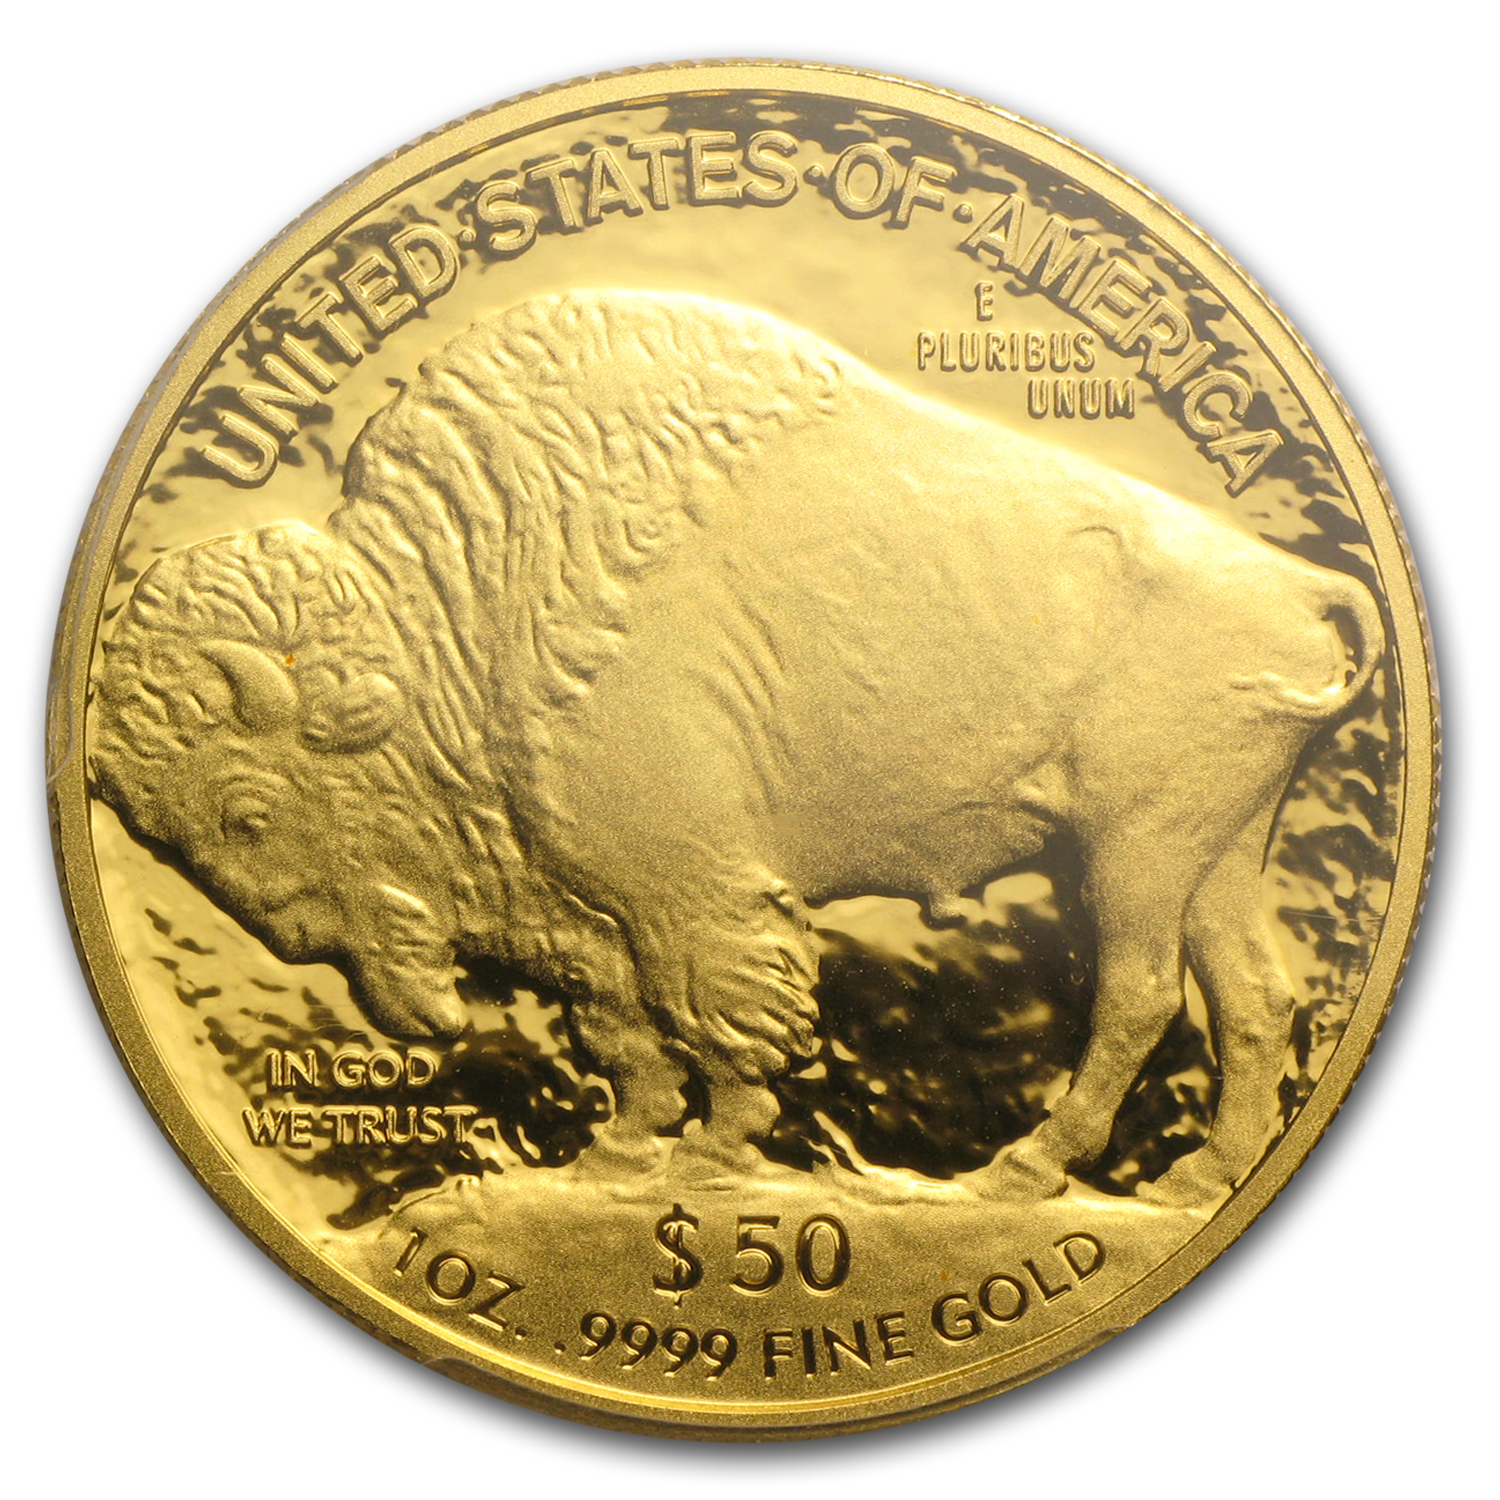 2013-W 1 oz Proof Gold Buffalo PR-70 PCGS (Signed Label)